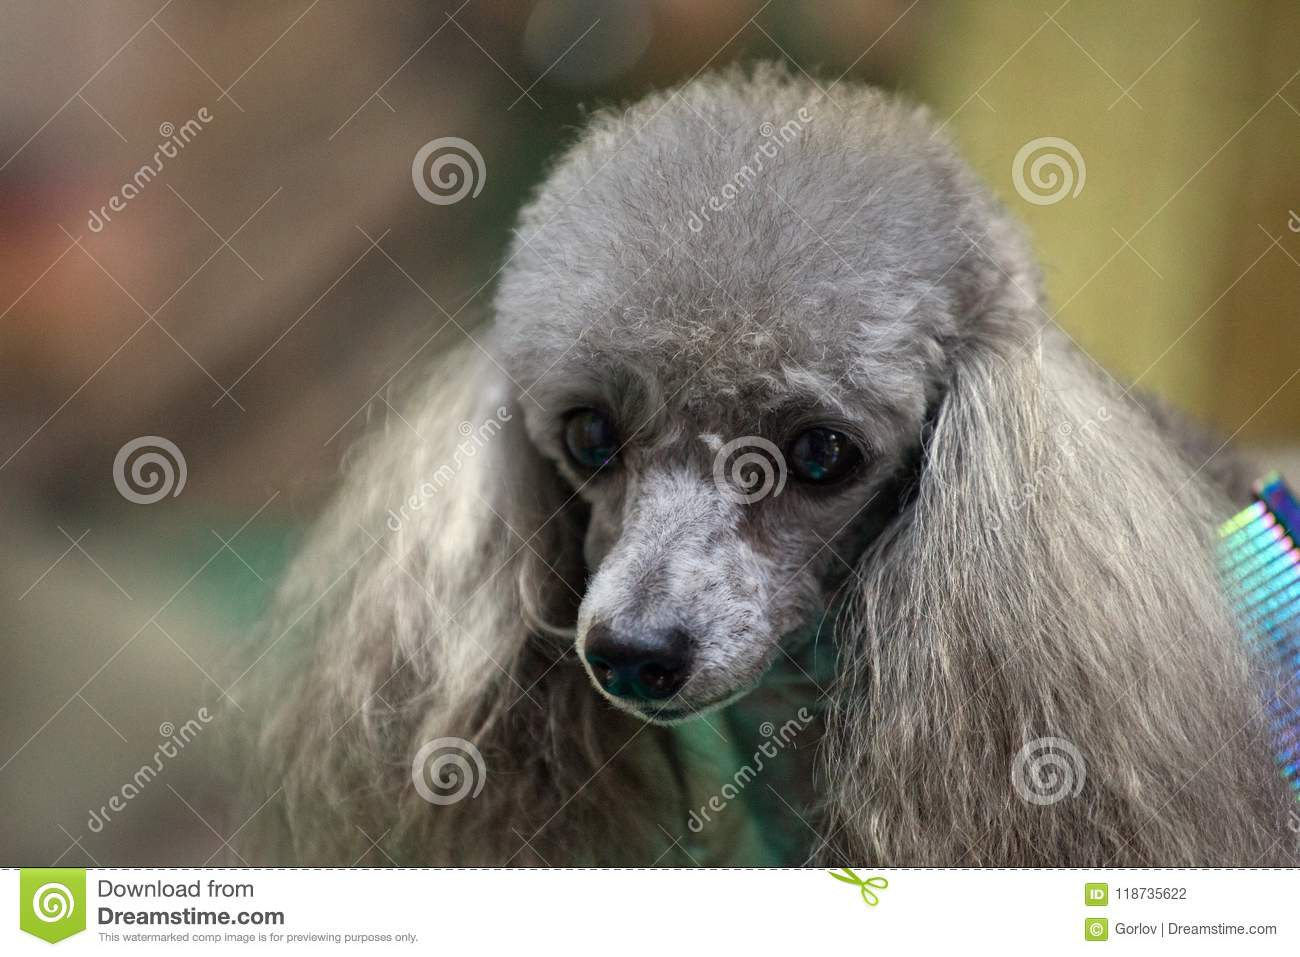 Pleasant Poodle Dog Hairstyle Groomer Professional Stock Photo Image Of Natural Hairstyles Runnerswayorg